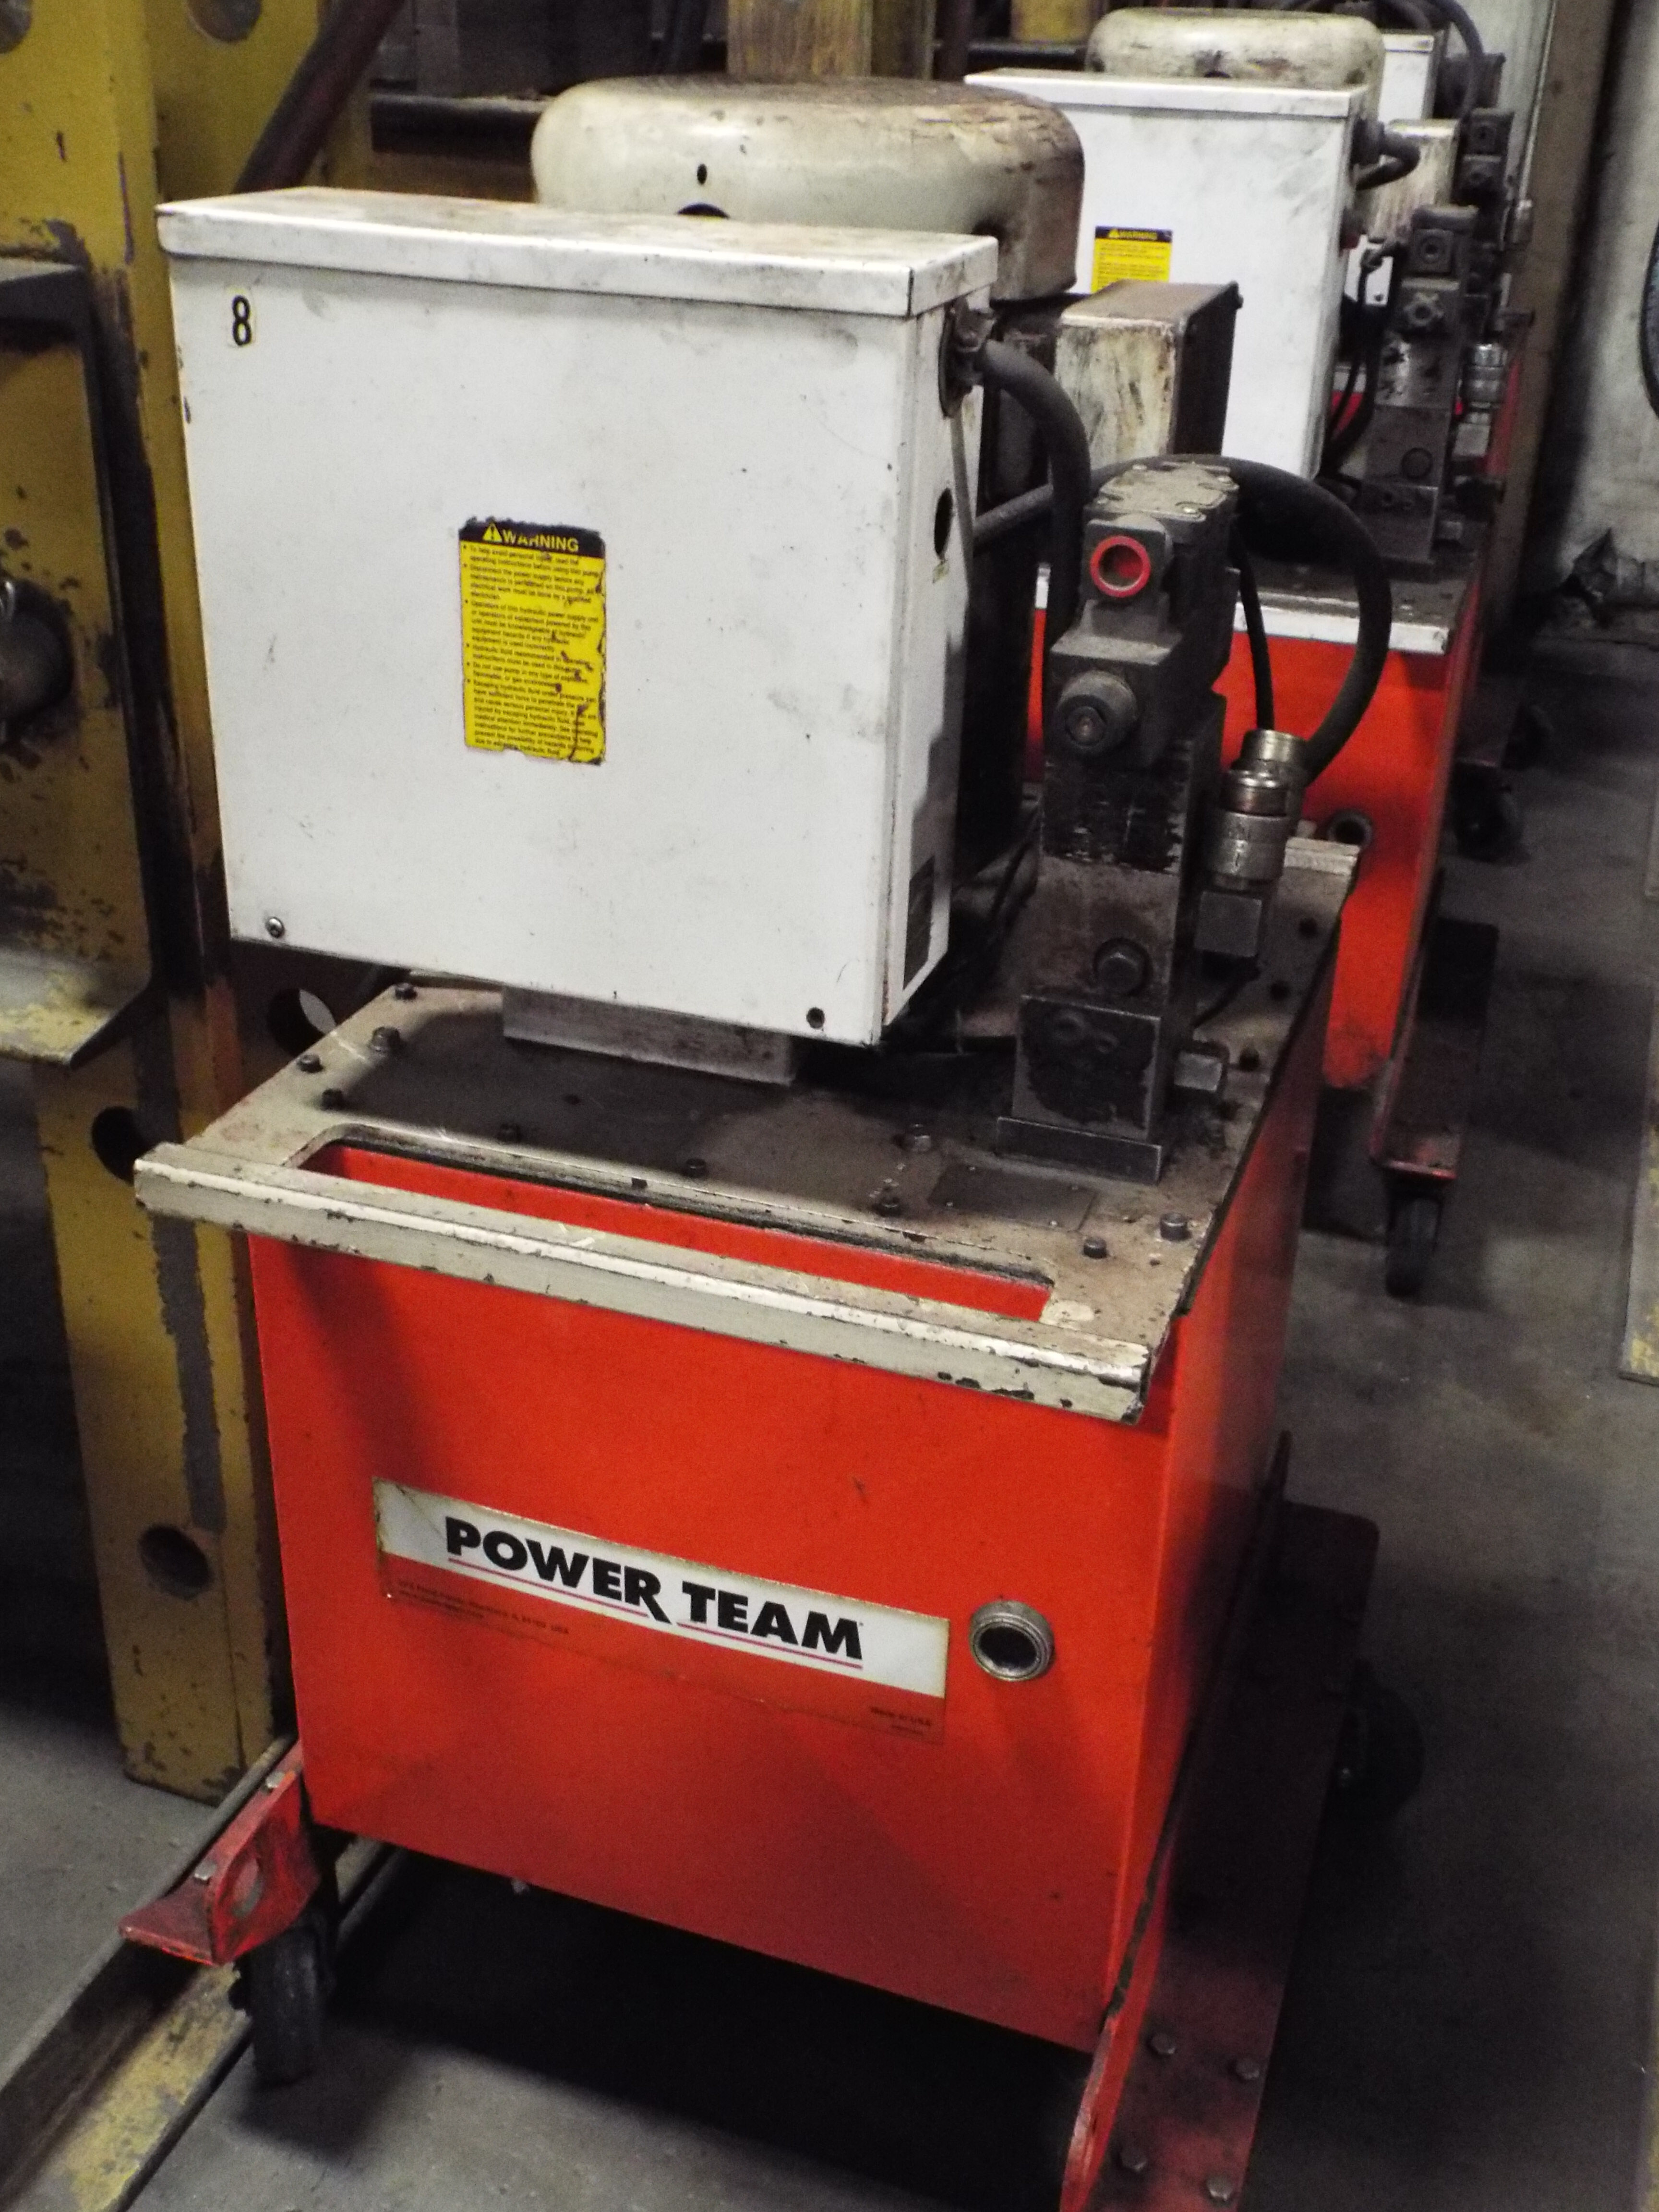 Lot 54 - ENERPAC IPH10030 HYDRAULIC H-FRAME PRESSES WITH 100 TON CAPACITY, SPX POWERTEAM 10 HP HYDRAULIC